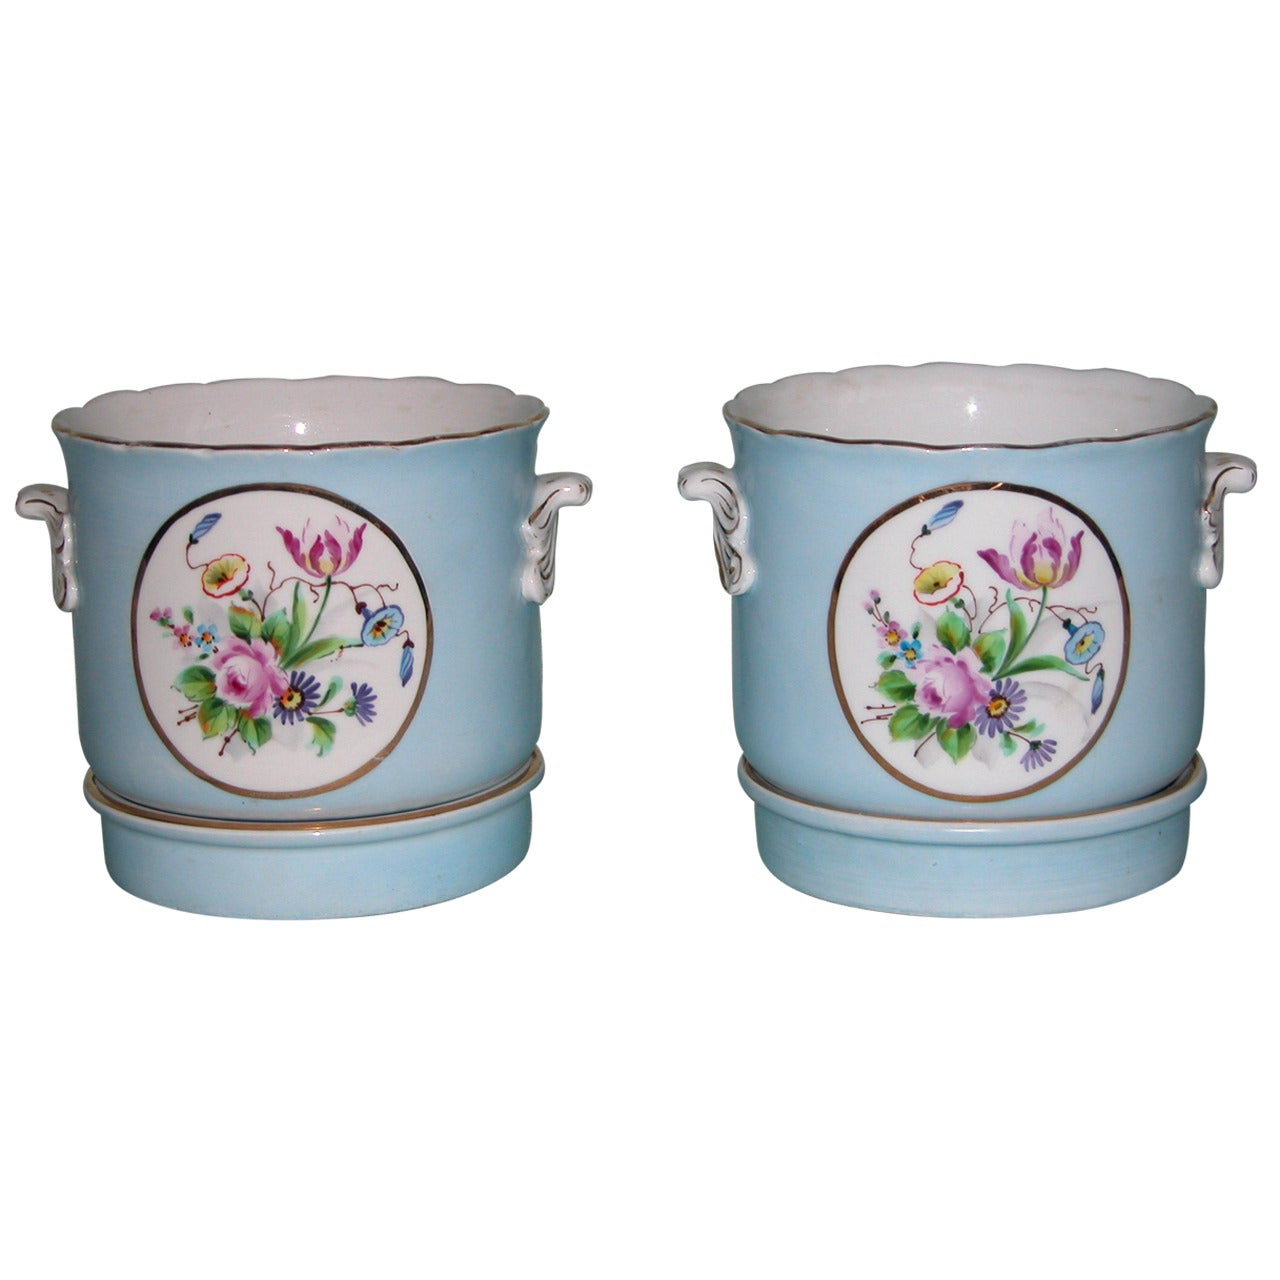 Pair of Early 20th Century Porceain Cachepot